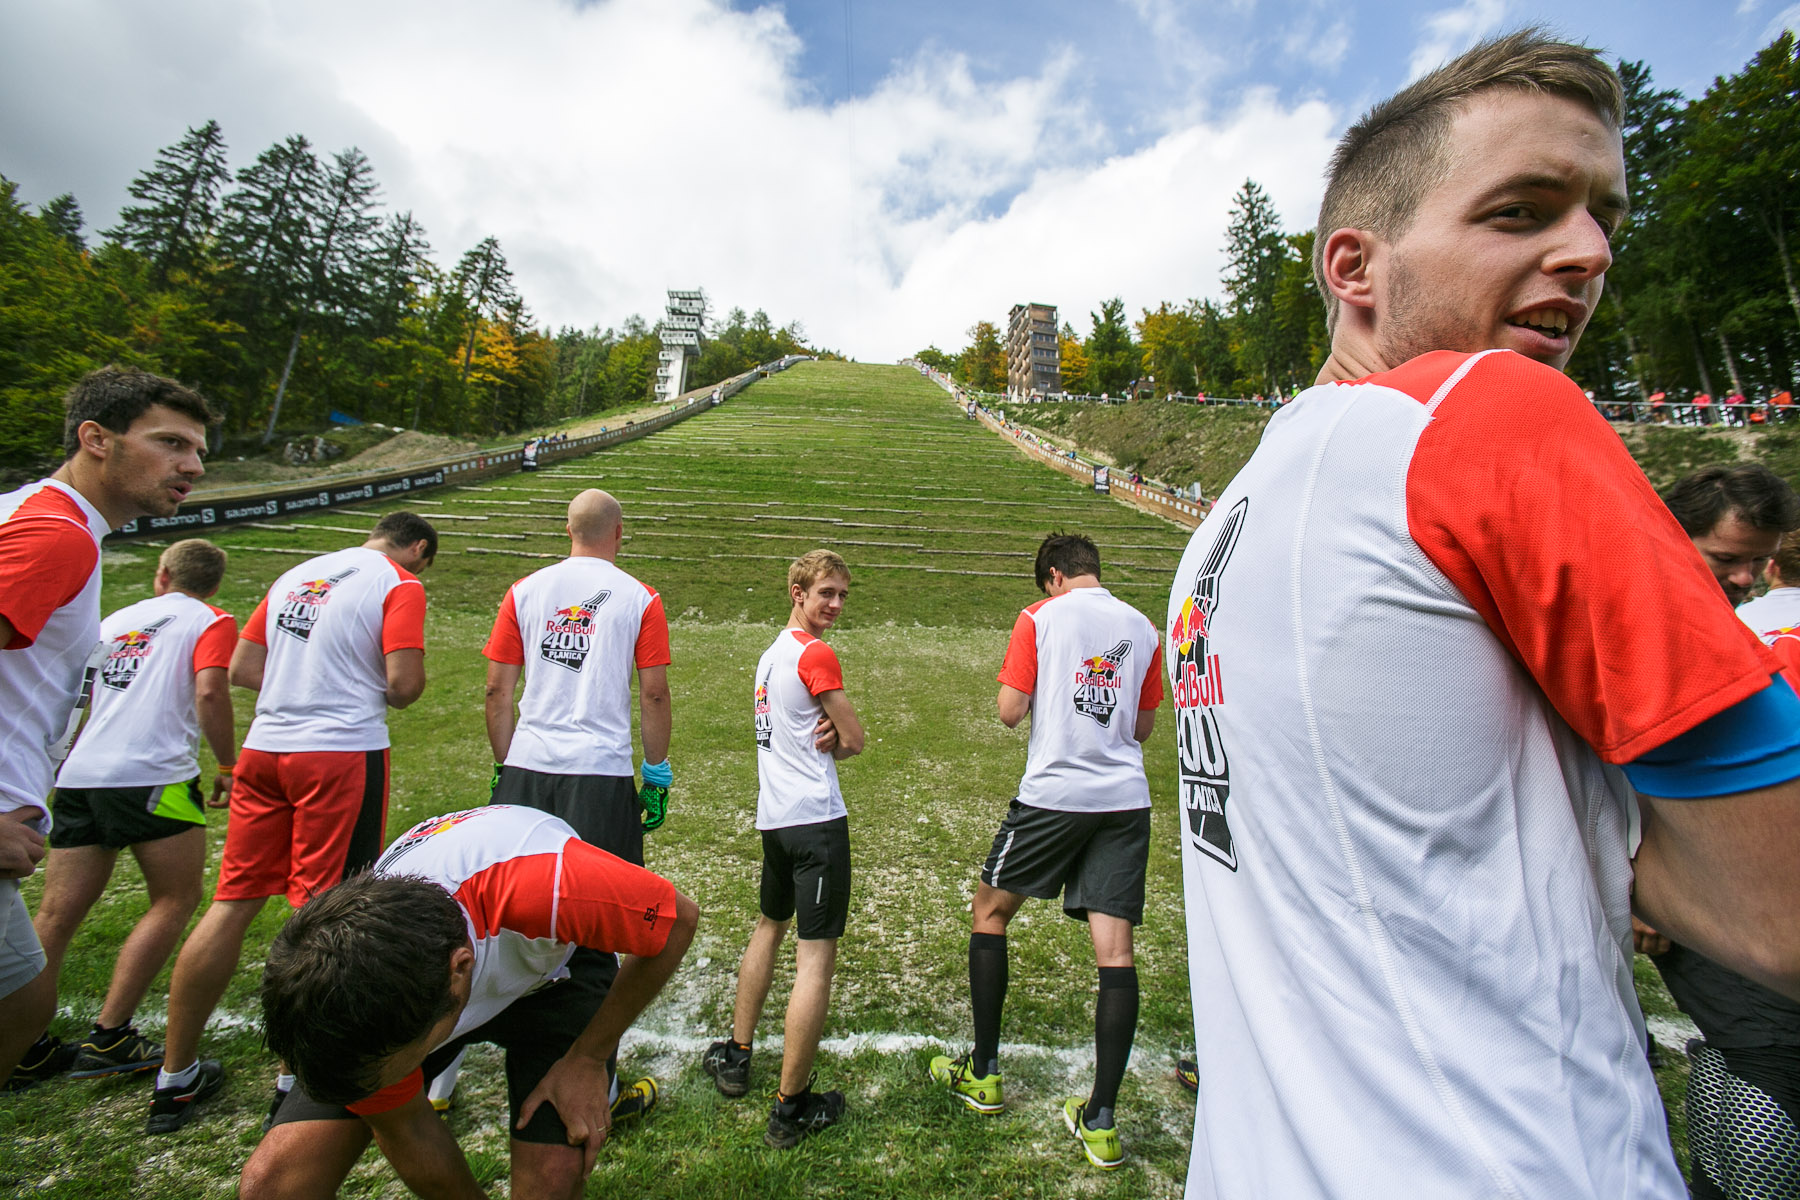 Competitors wait at the starting line before running up the ski flying hill during the Red Bull 400 race in Planica, Slovenia, Sep. 19, 2015.